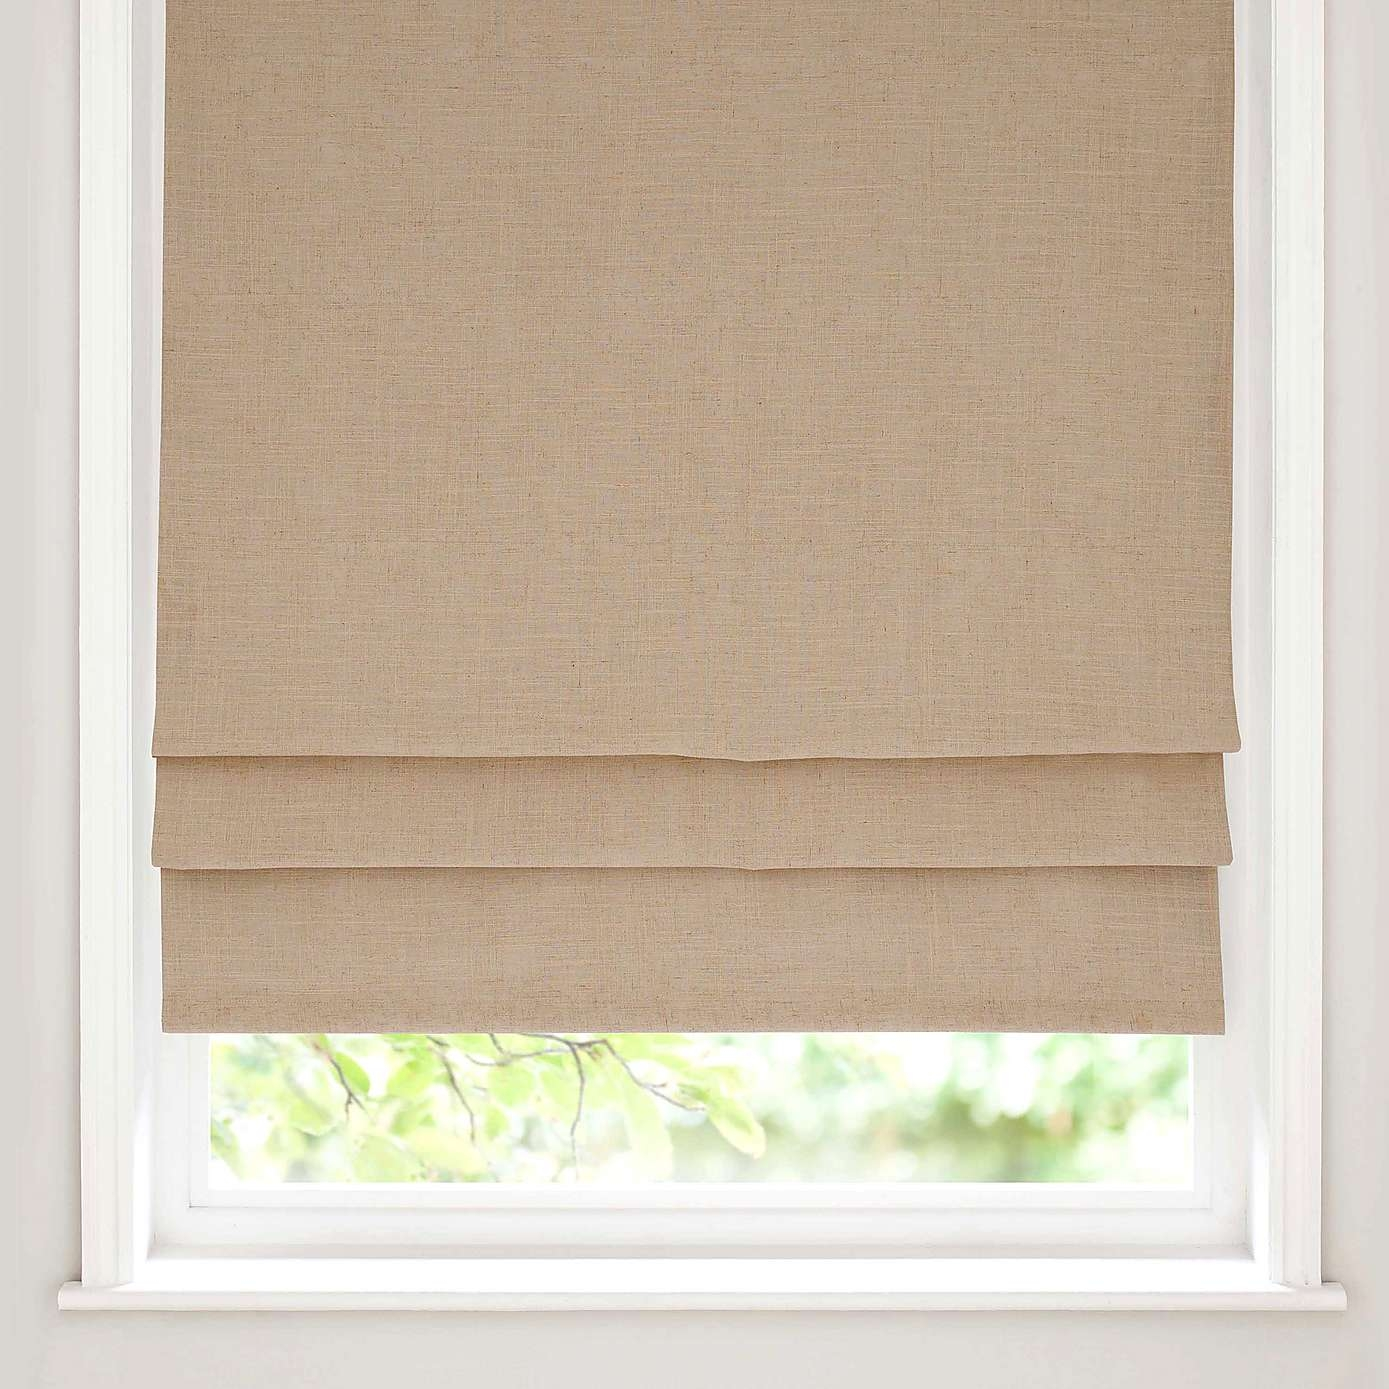 Beige Linen Blackout Roman Blind Dunelm Best Blackout Curtains Within Blackout Roman Blind (Image 3 of 15)